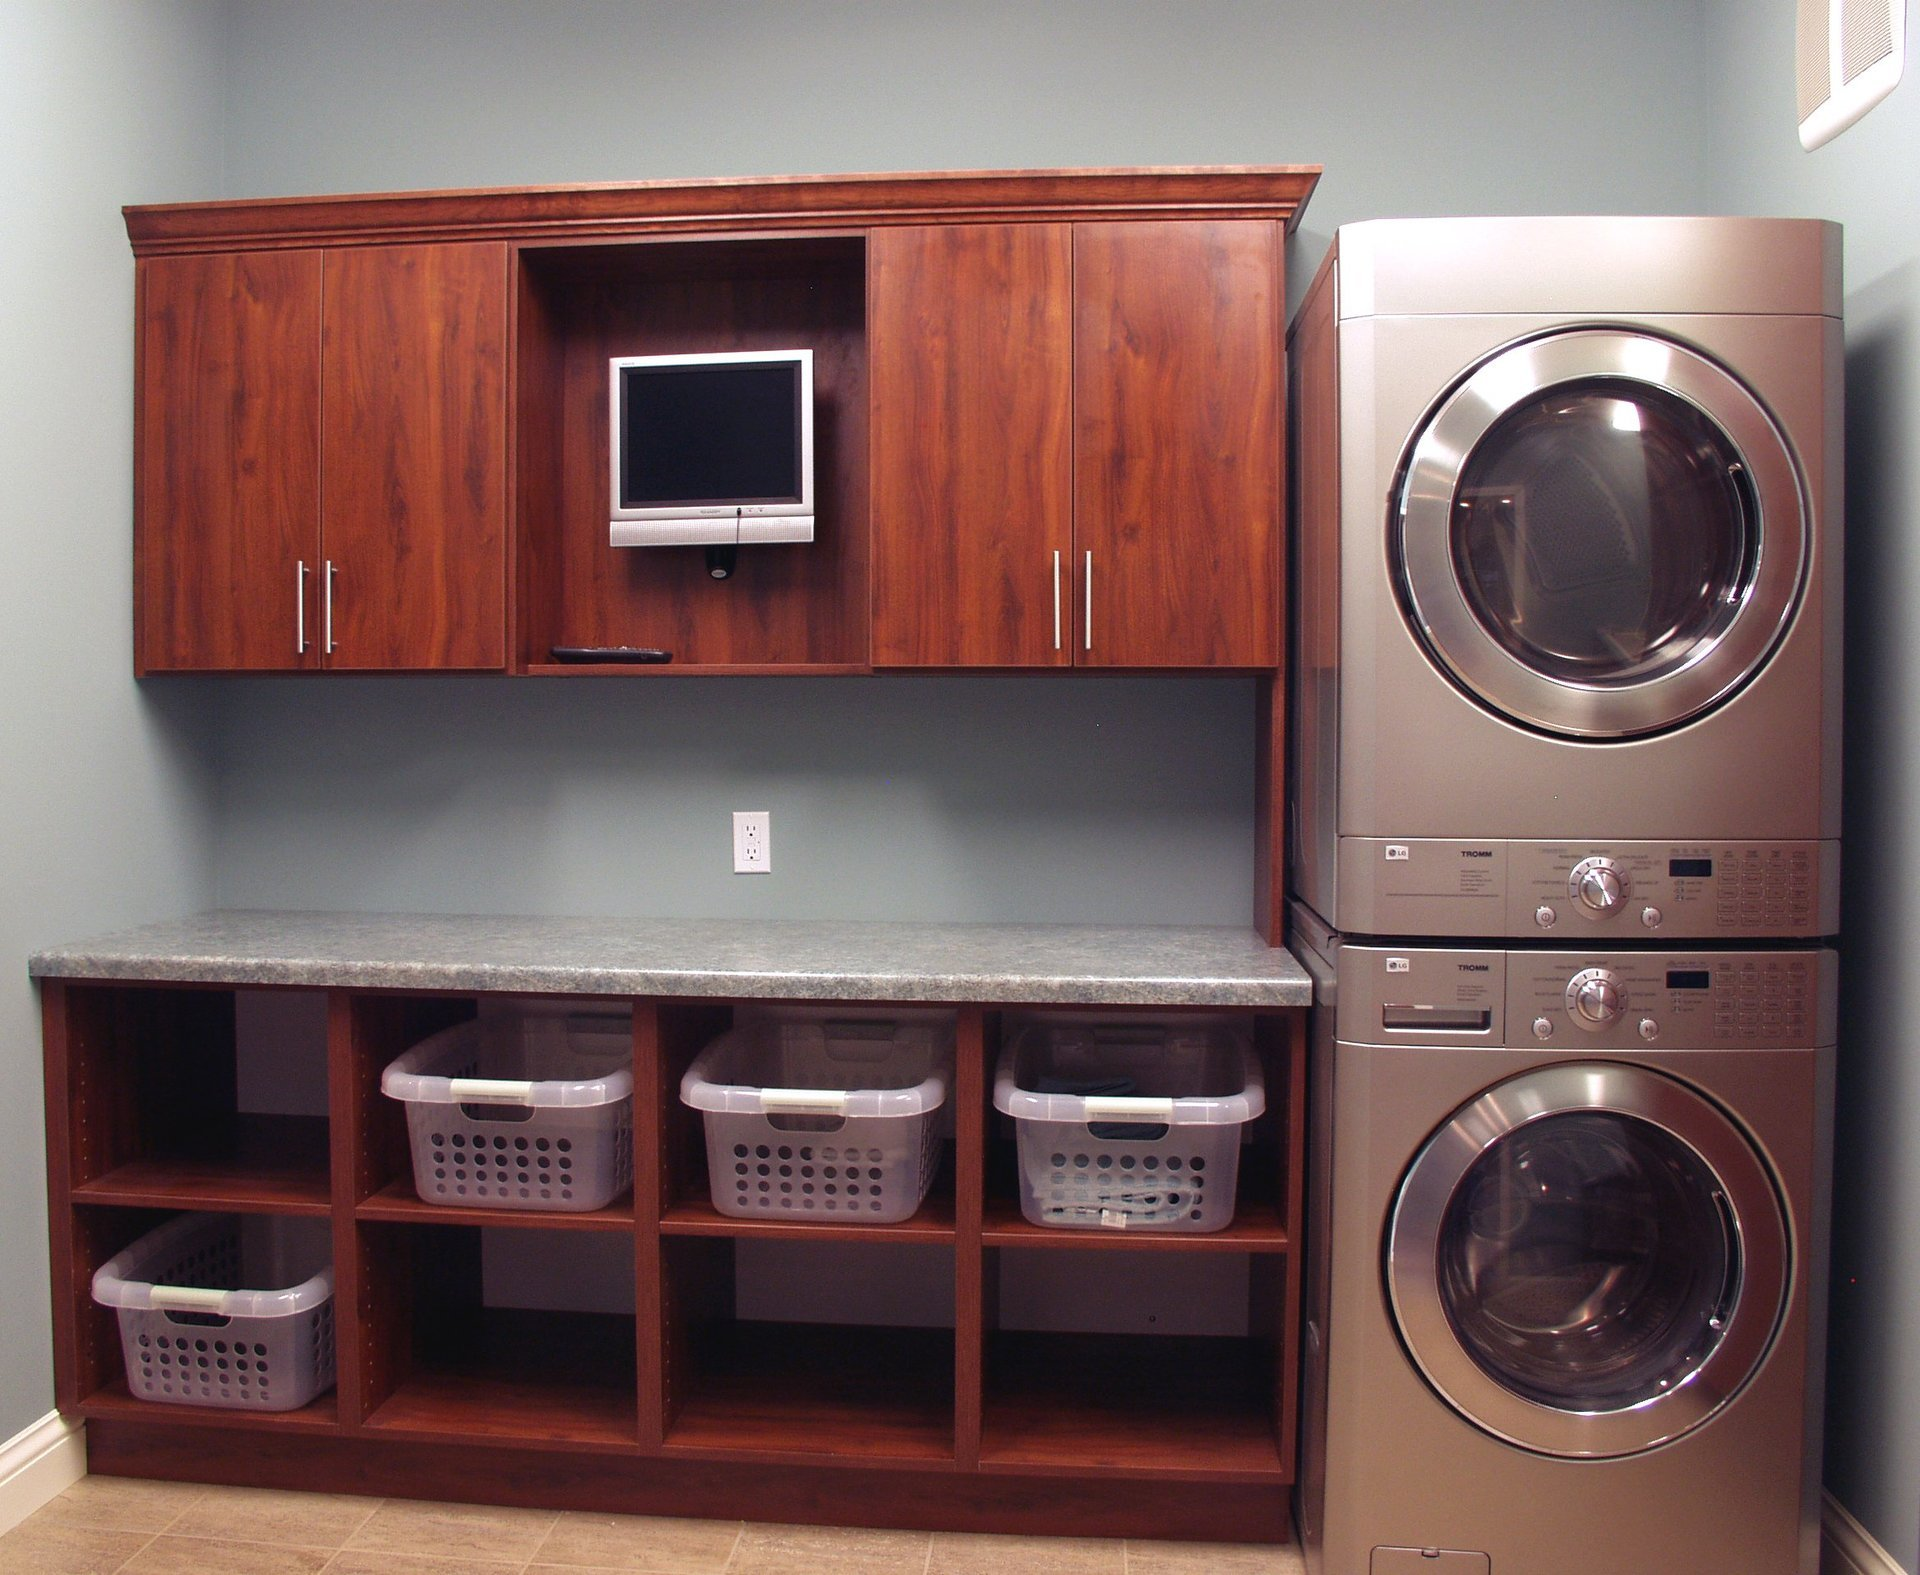 Featherstone Cabinetry & Design